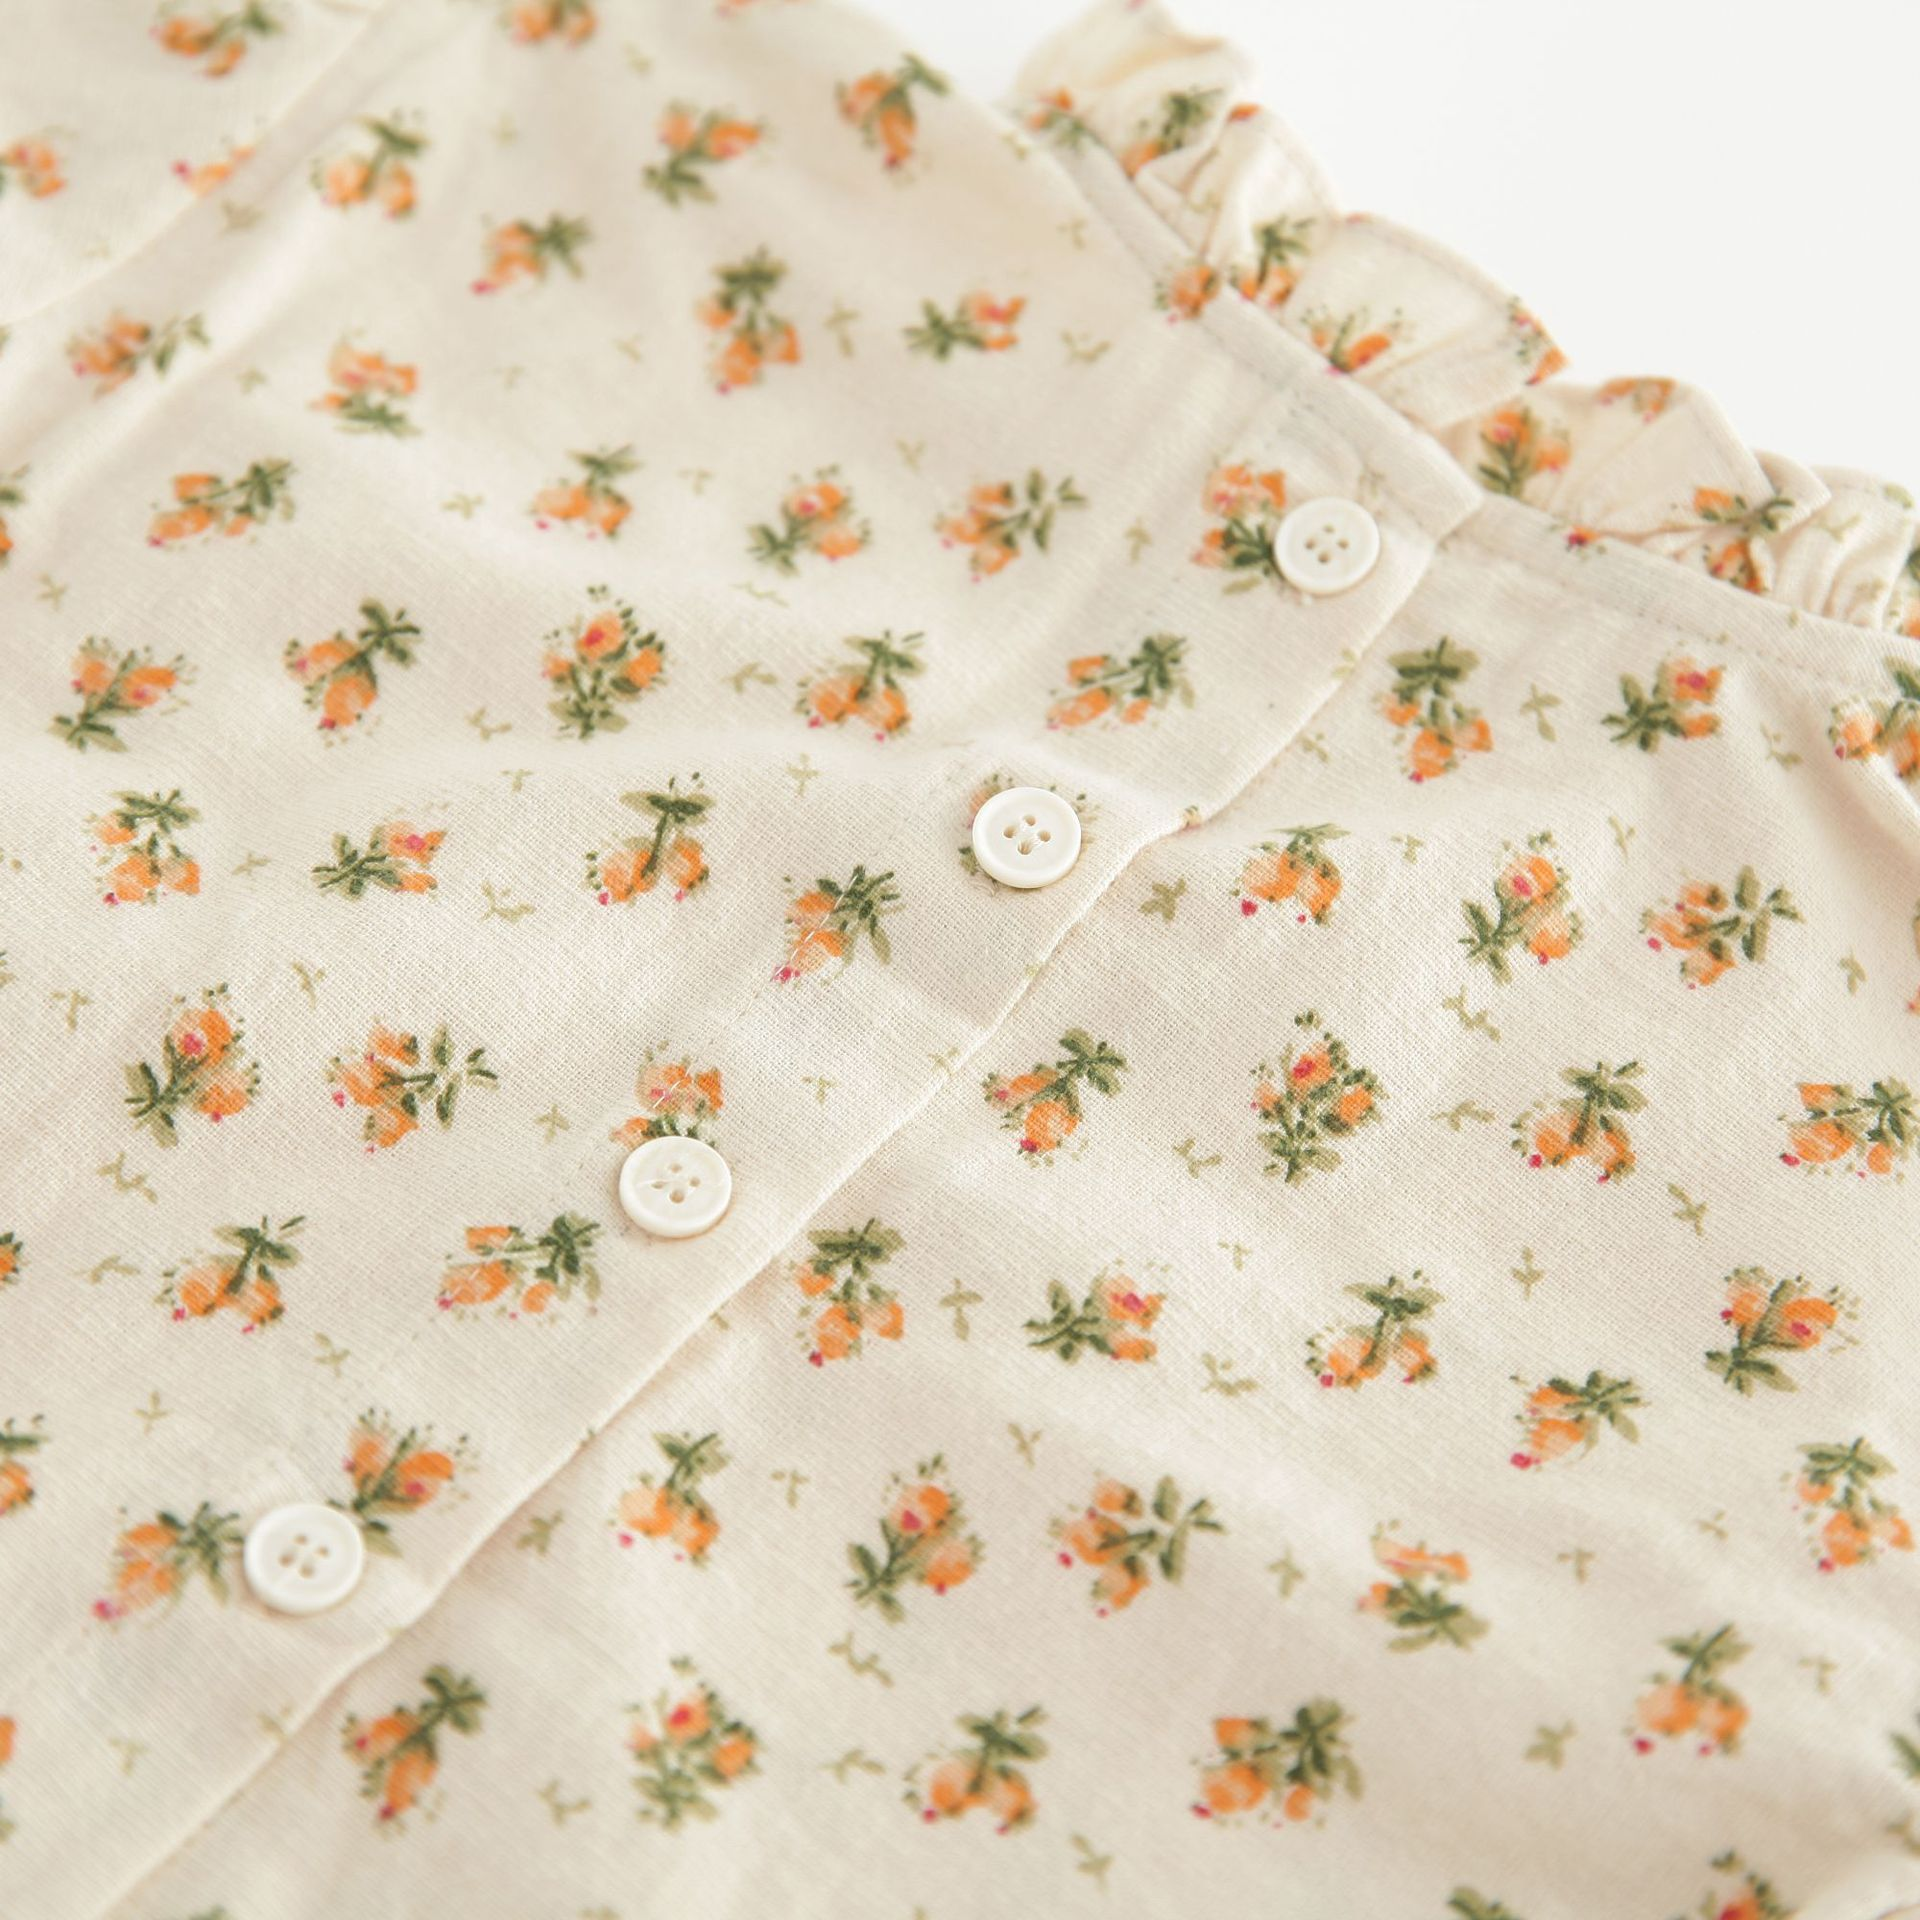 Vintage Baby Girl Clothes Spring Autumn Linen Cotton Girls Floral Blouse Shirt , Romper Dress Newborn Baby Girls Clothes Outfits